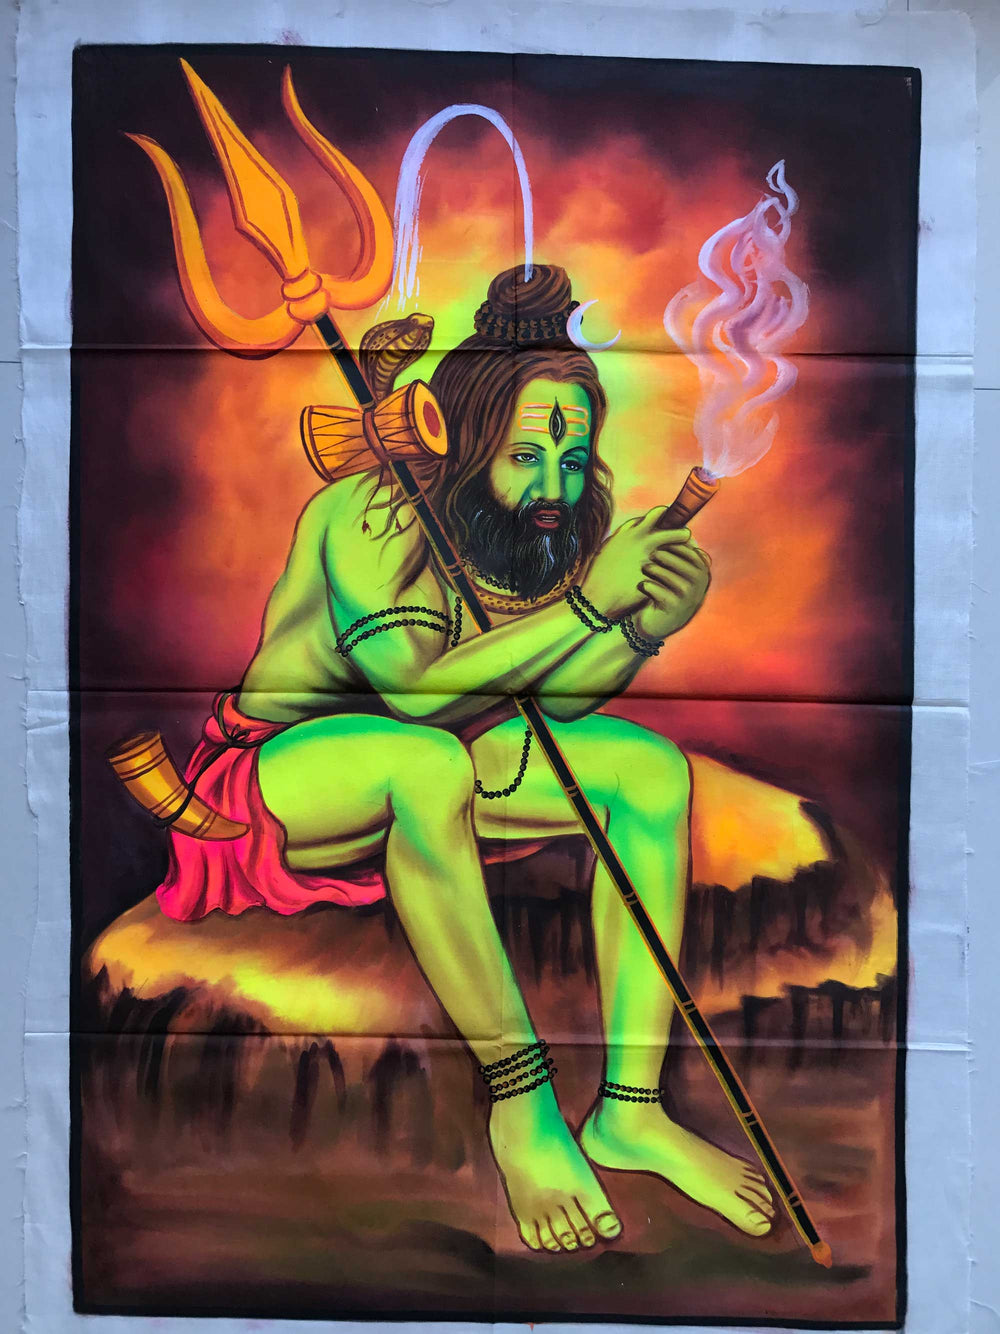 UV Glow Chillum Baba painting made from fluorescent colors